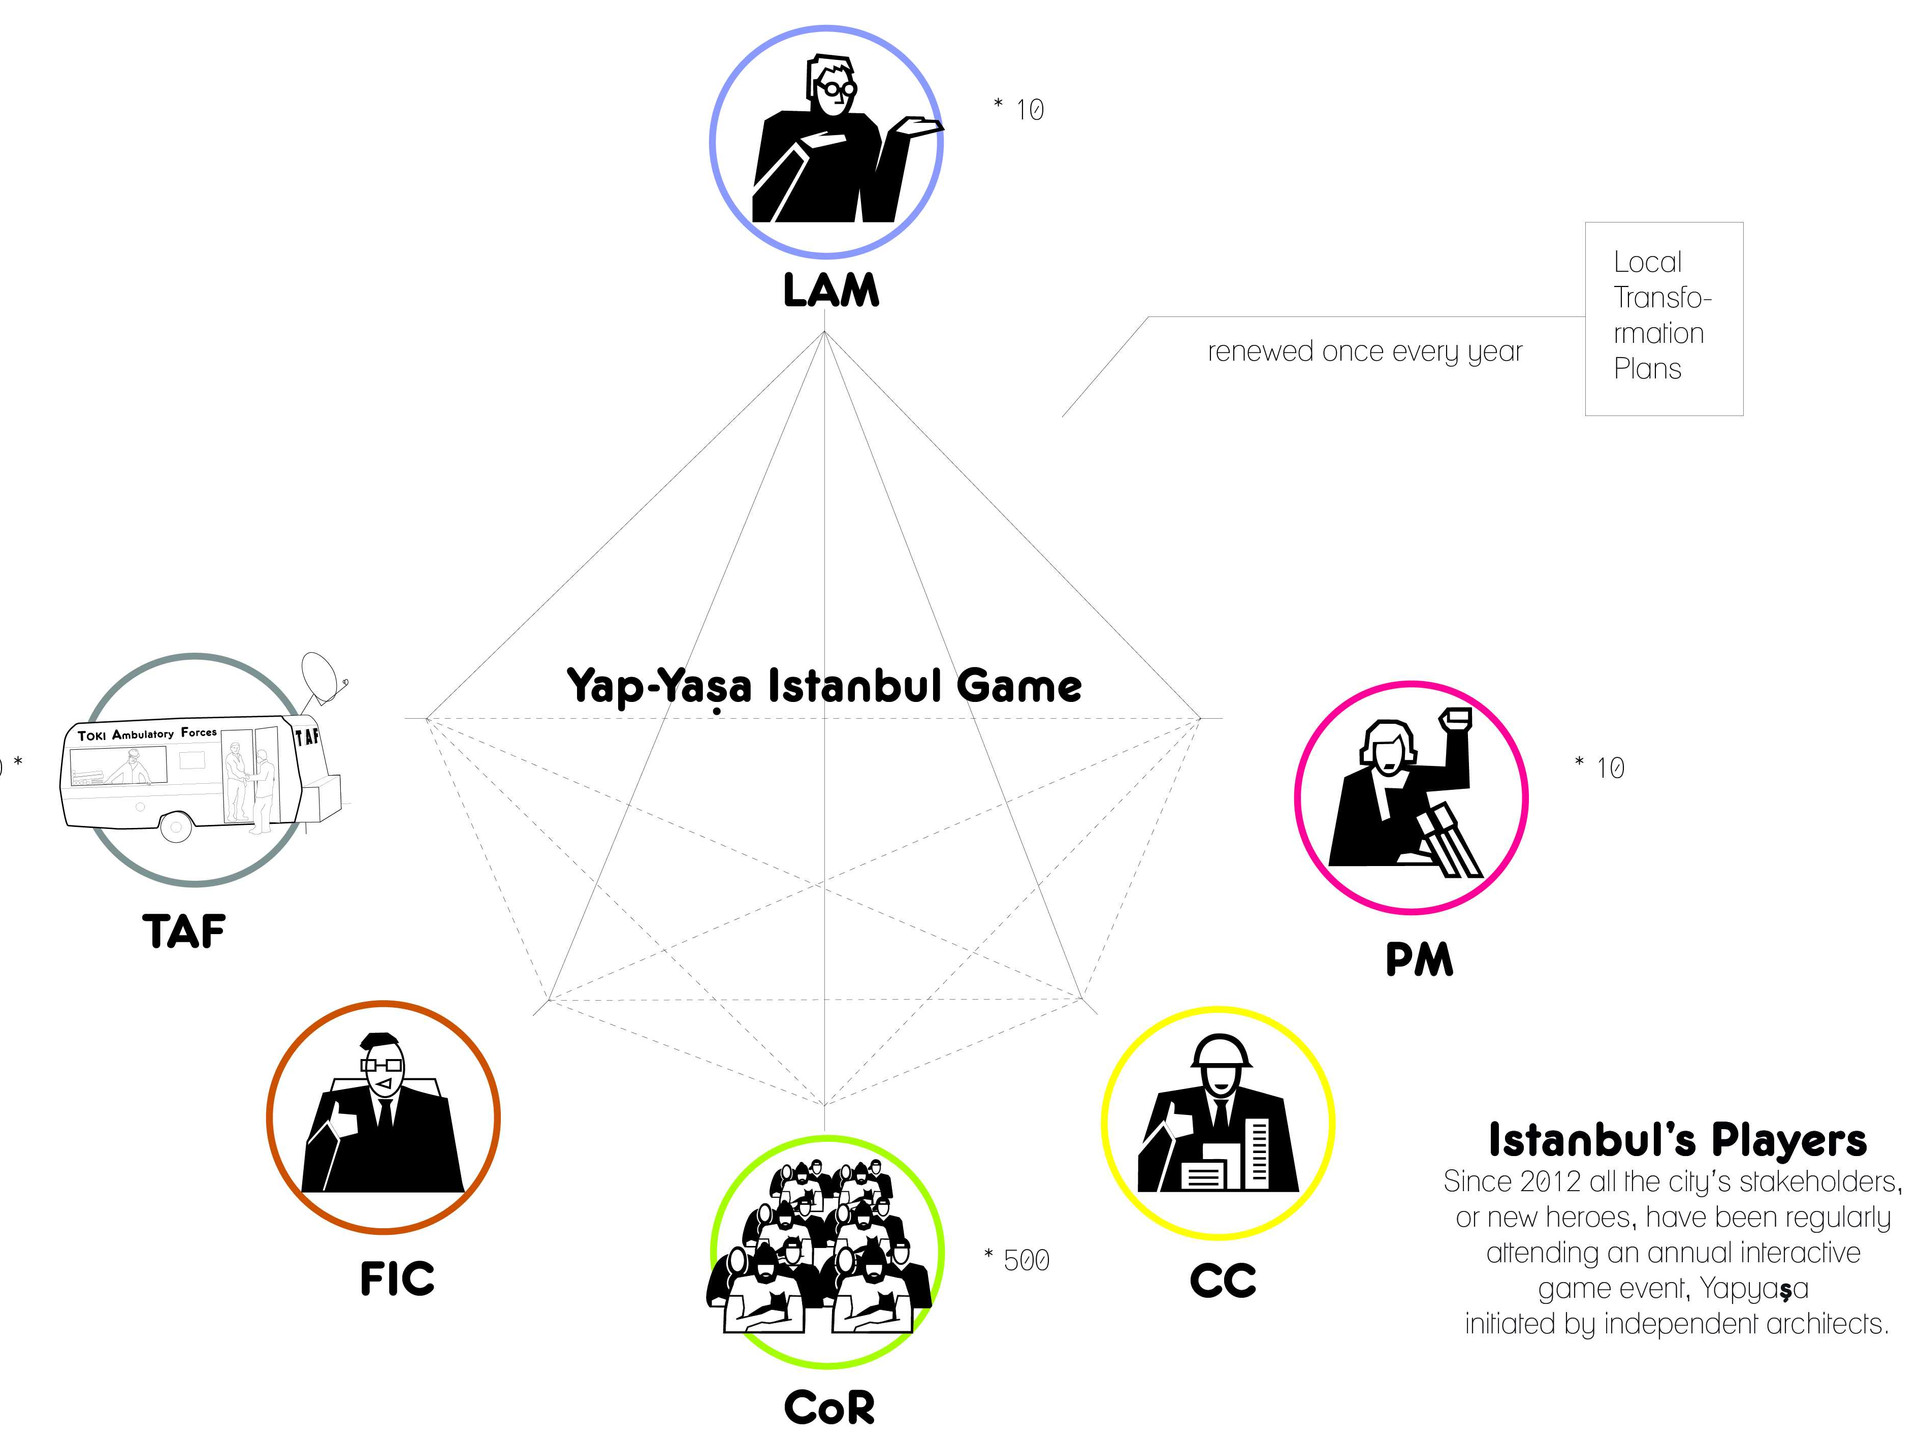 Since 2012 all the city's stakeholders, or new heroes, have been regularly attending an annual interactive game event, Yapyaşa initiated by independent architects [LAMs]. All rights reserved